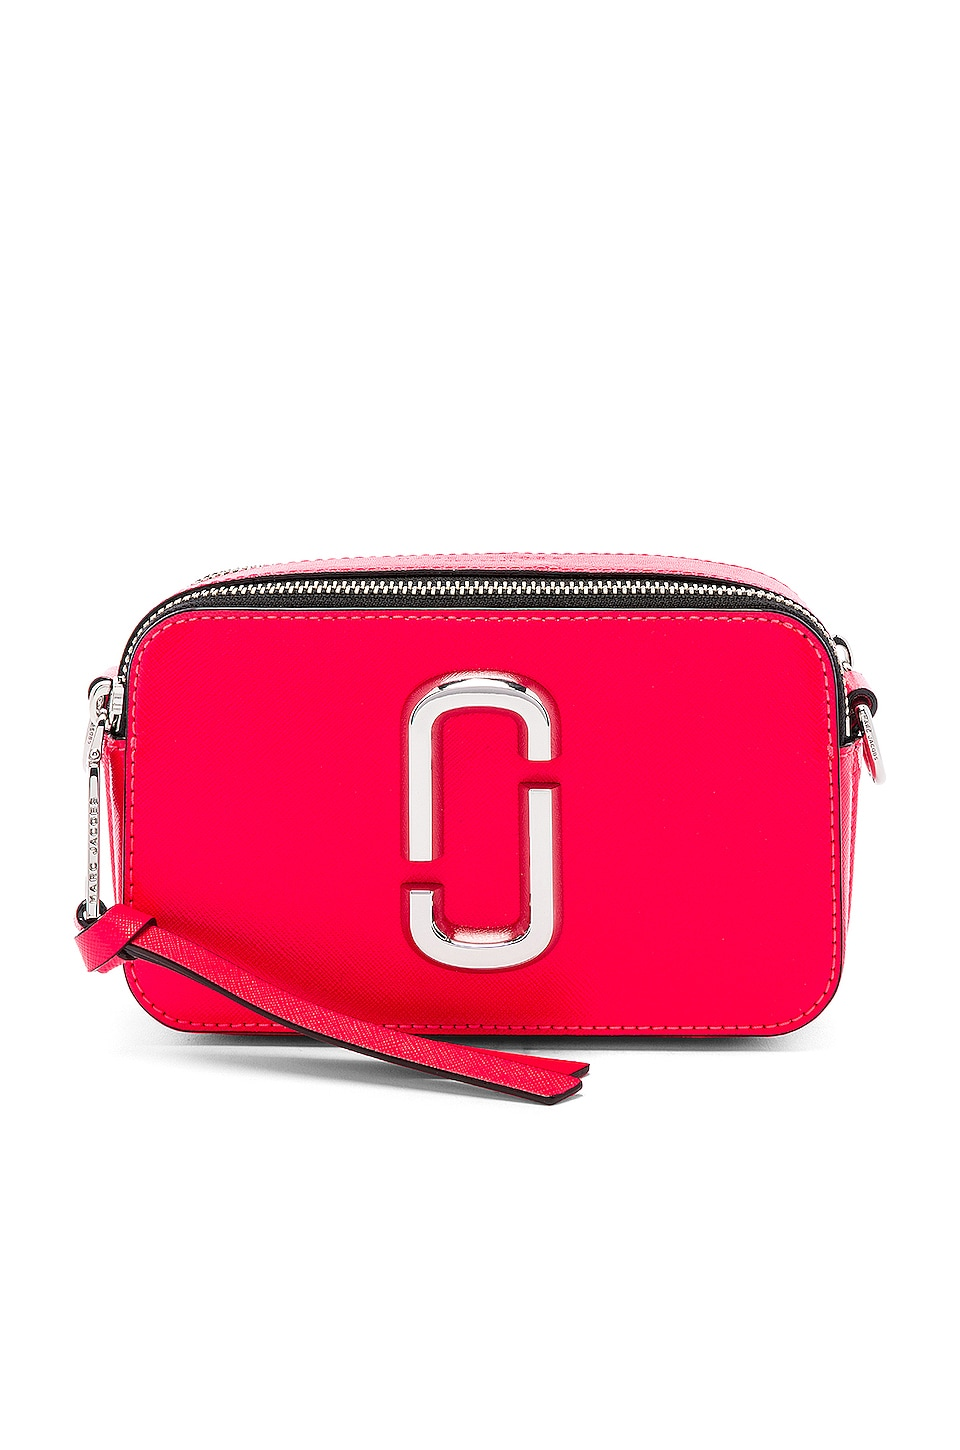 Marc Jacobs Snapshot Crossbody in Hot Pink